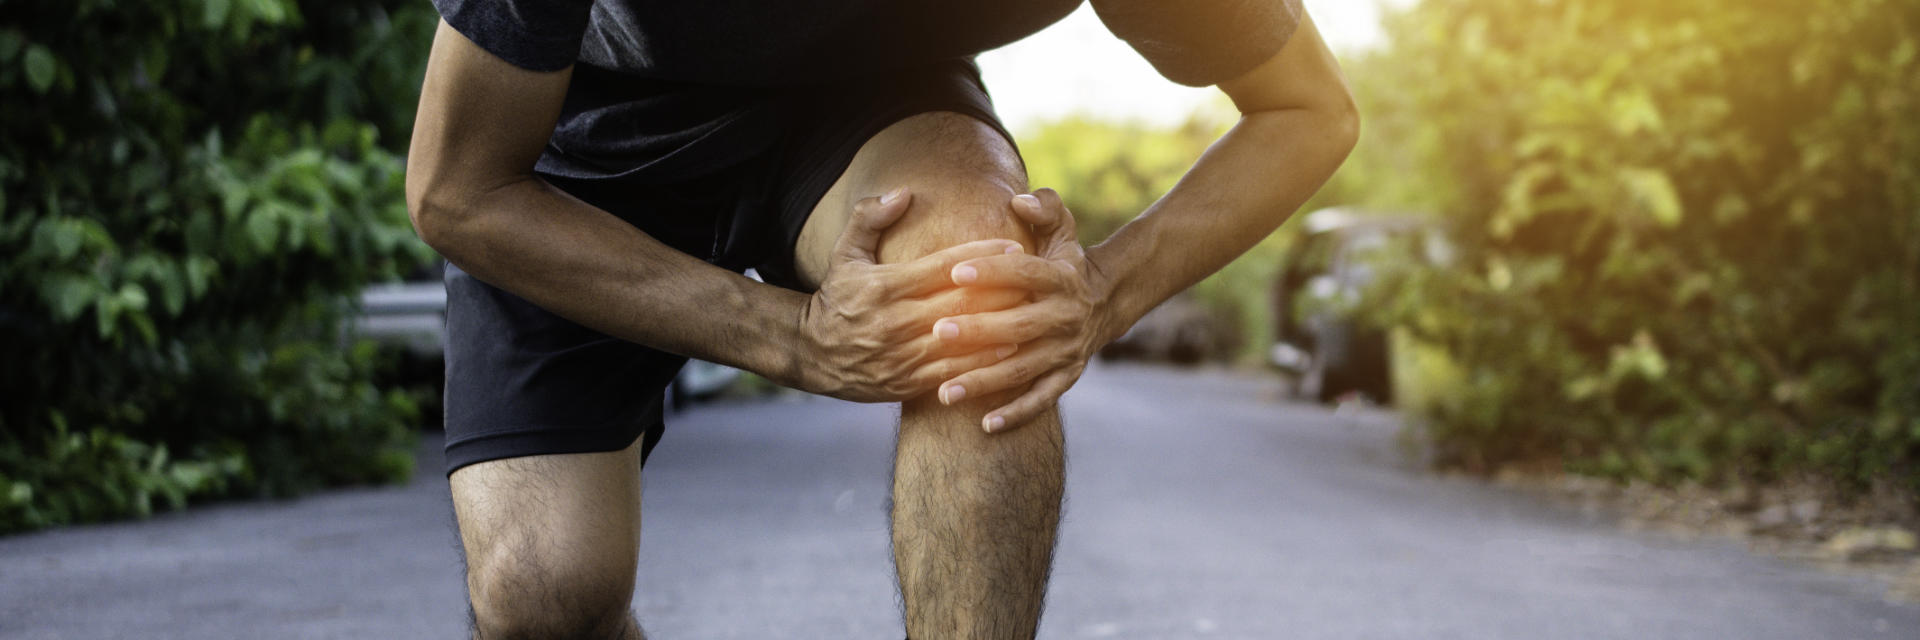 3 Major Benefits of Robotic Knee Replacement Surgery New York, NY